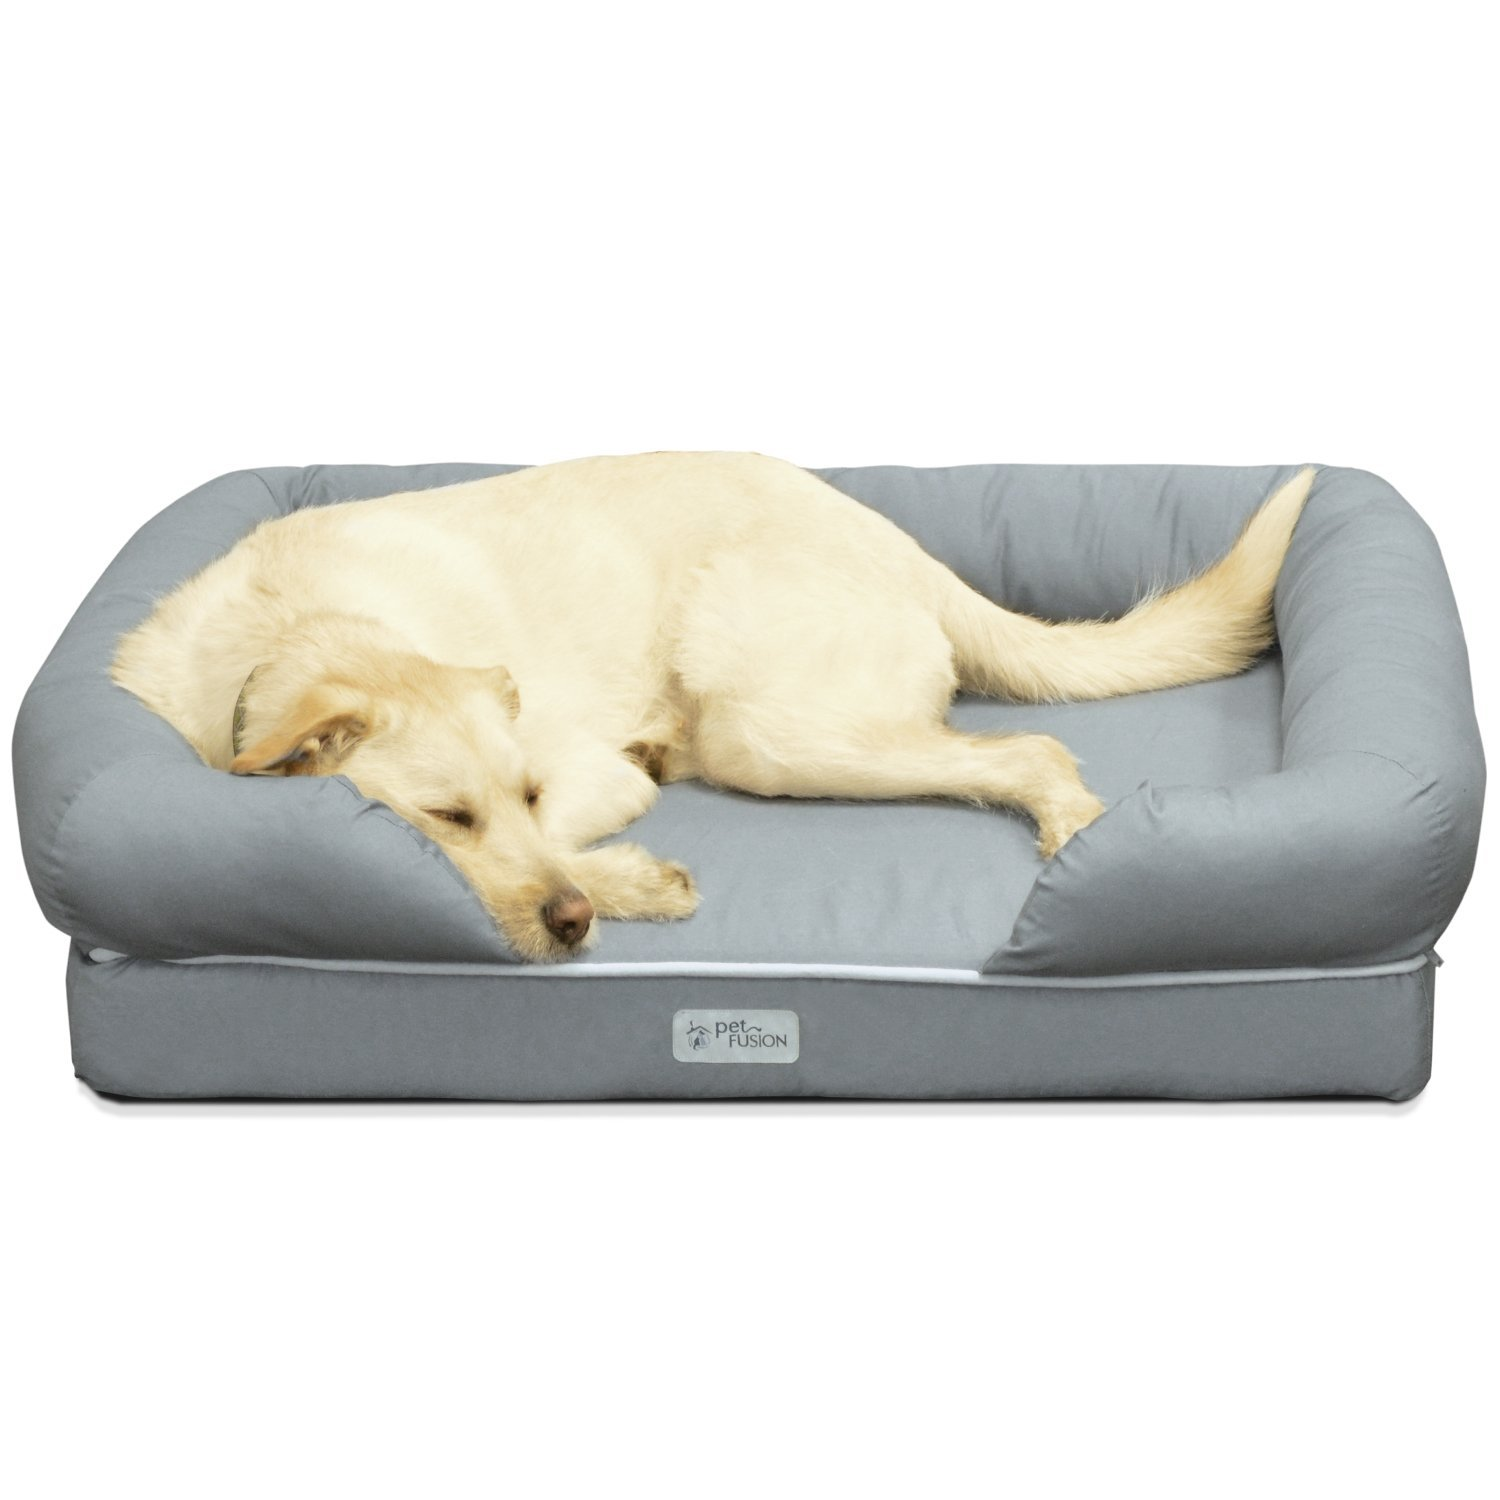 Petfusion Ultimate Orthopedic Dog Bed